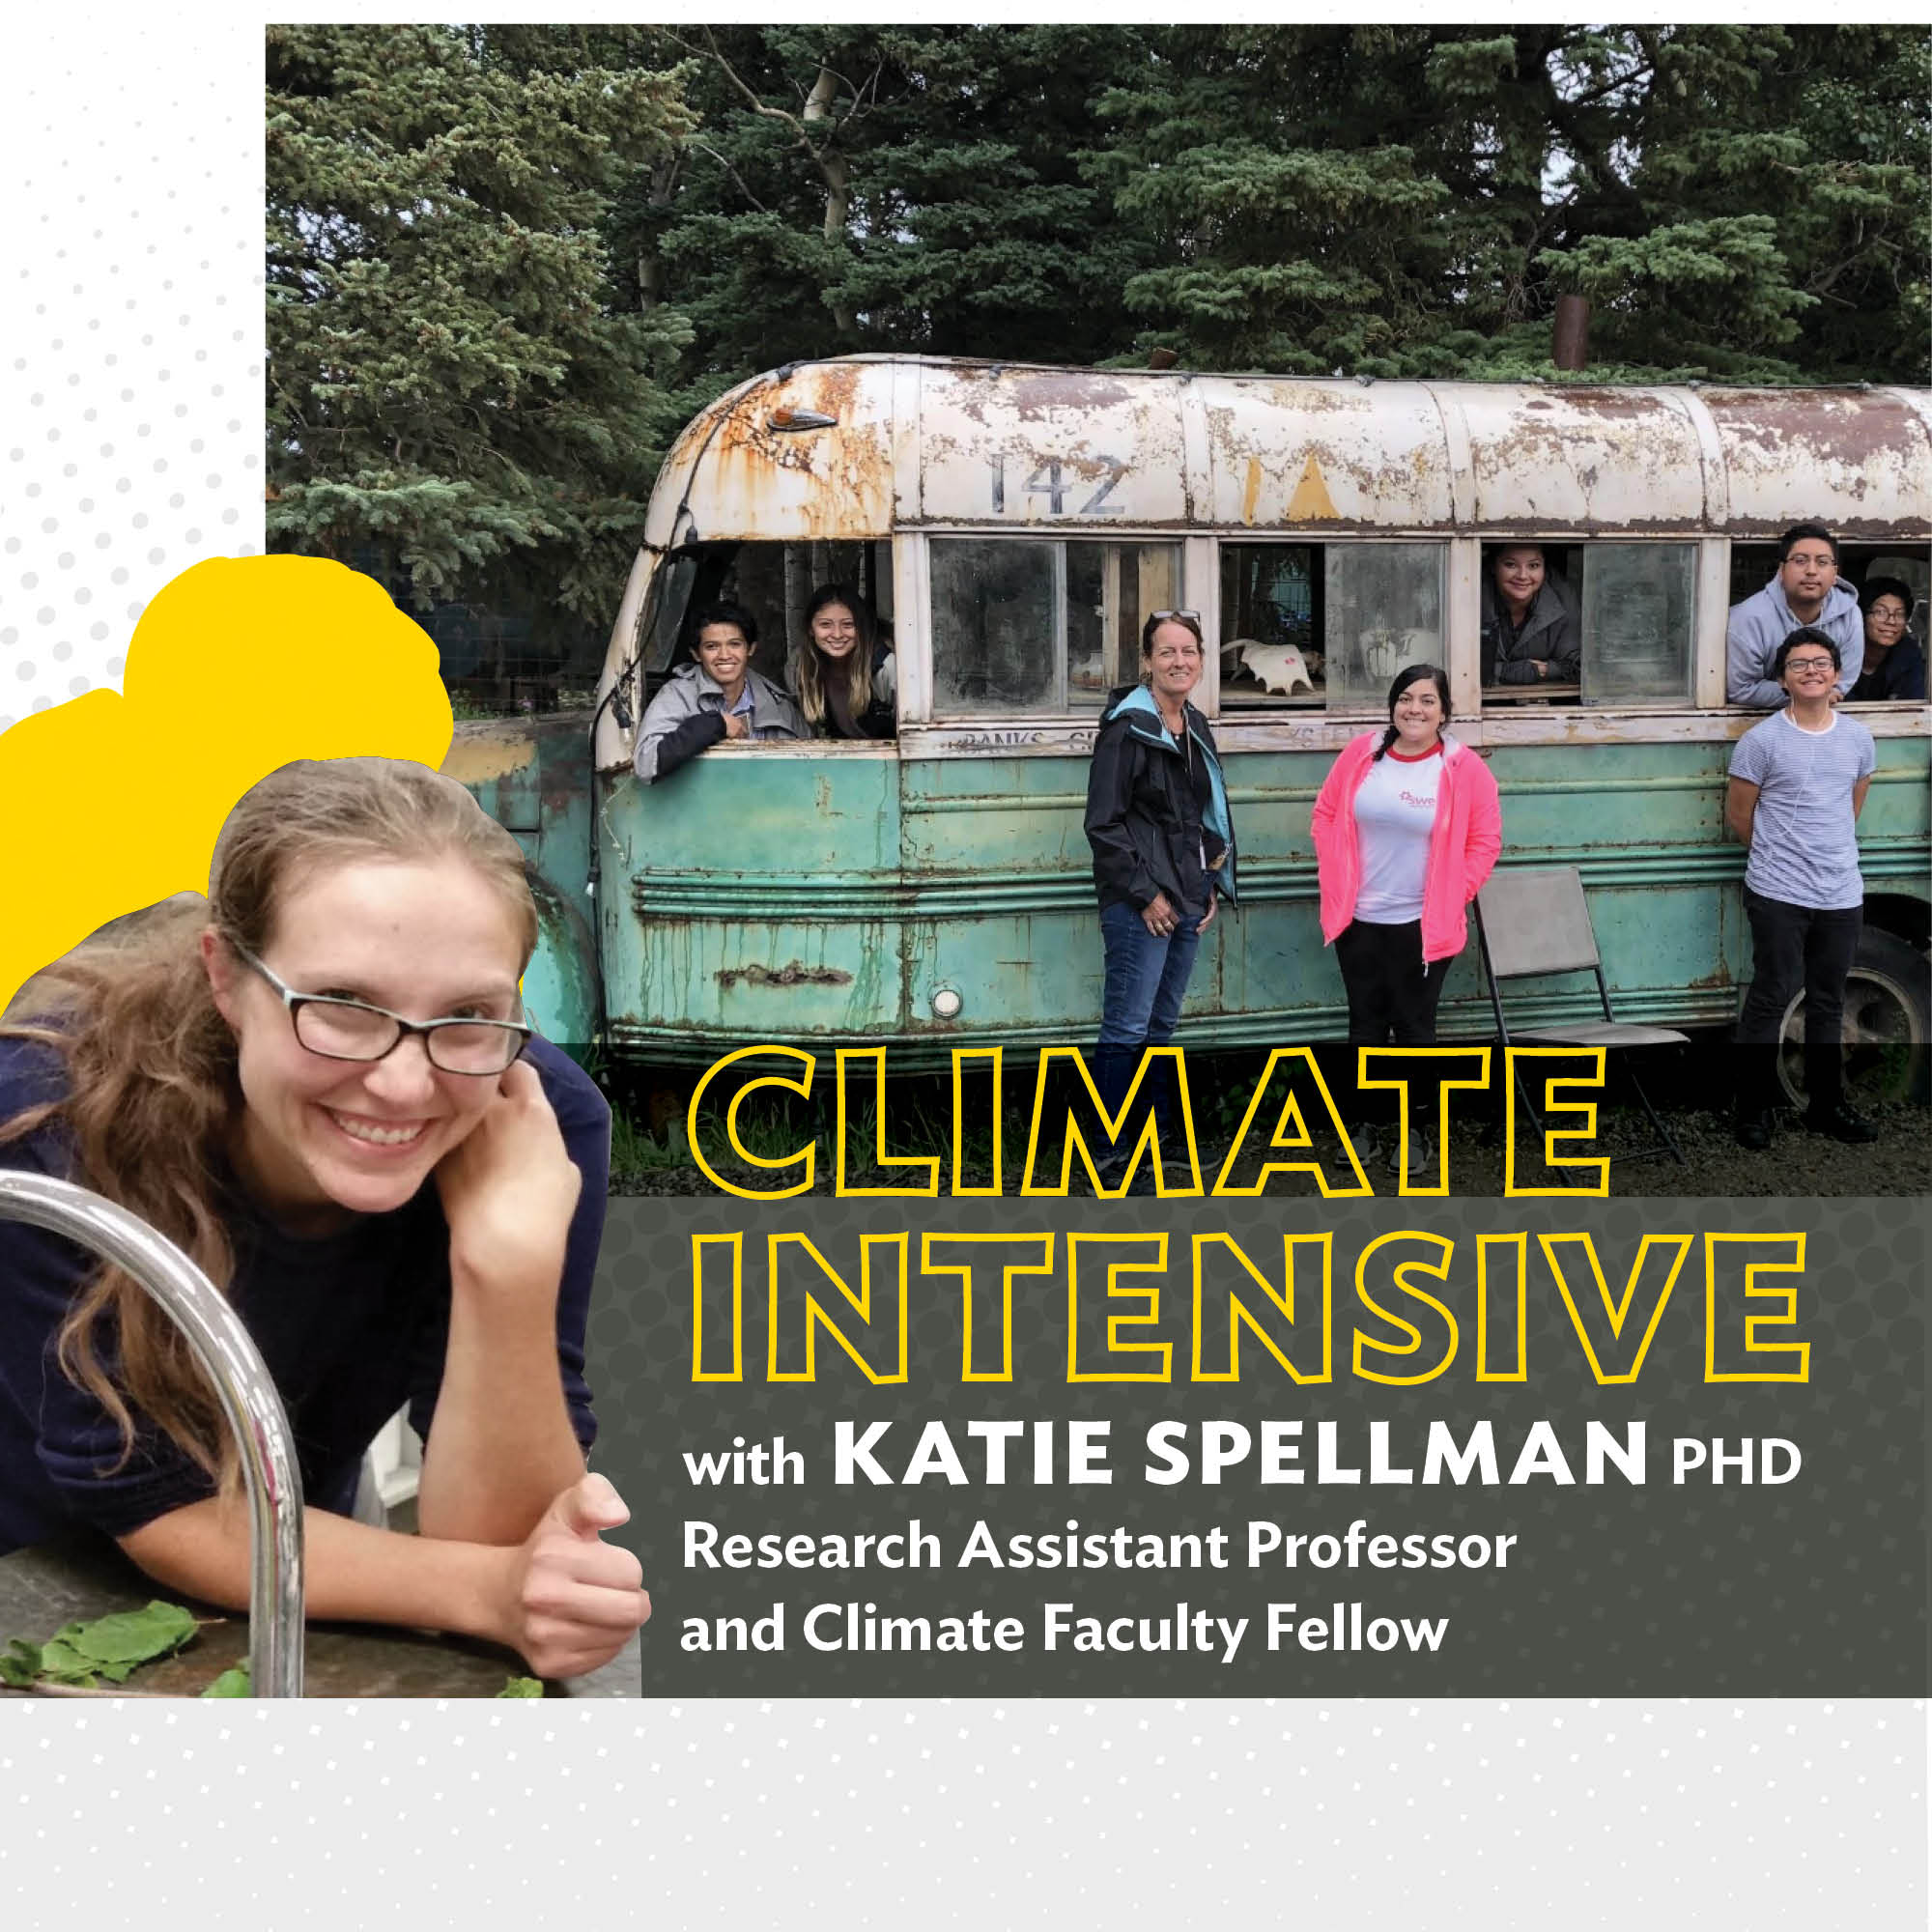 Climate Program with Katie Spellman